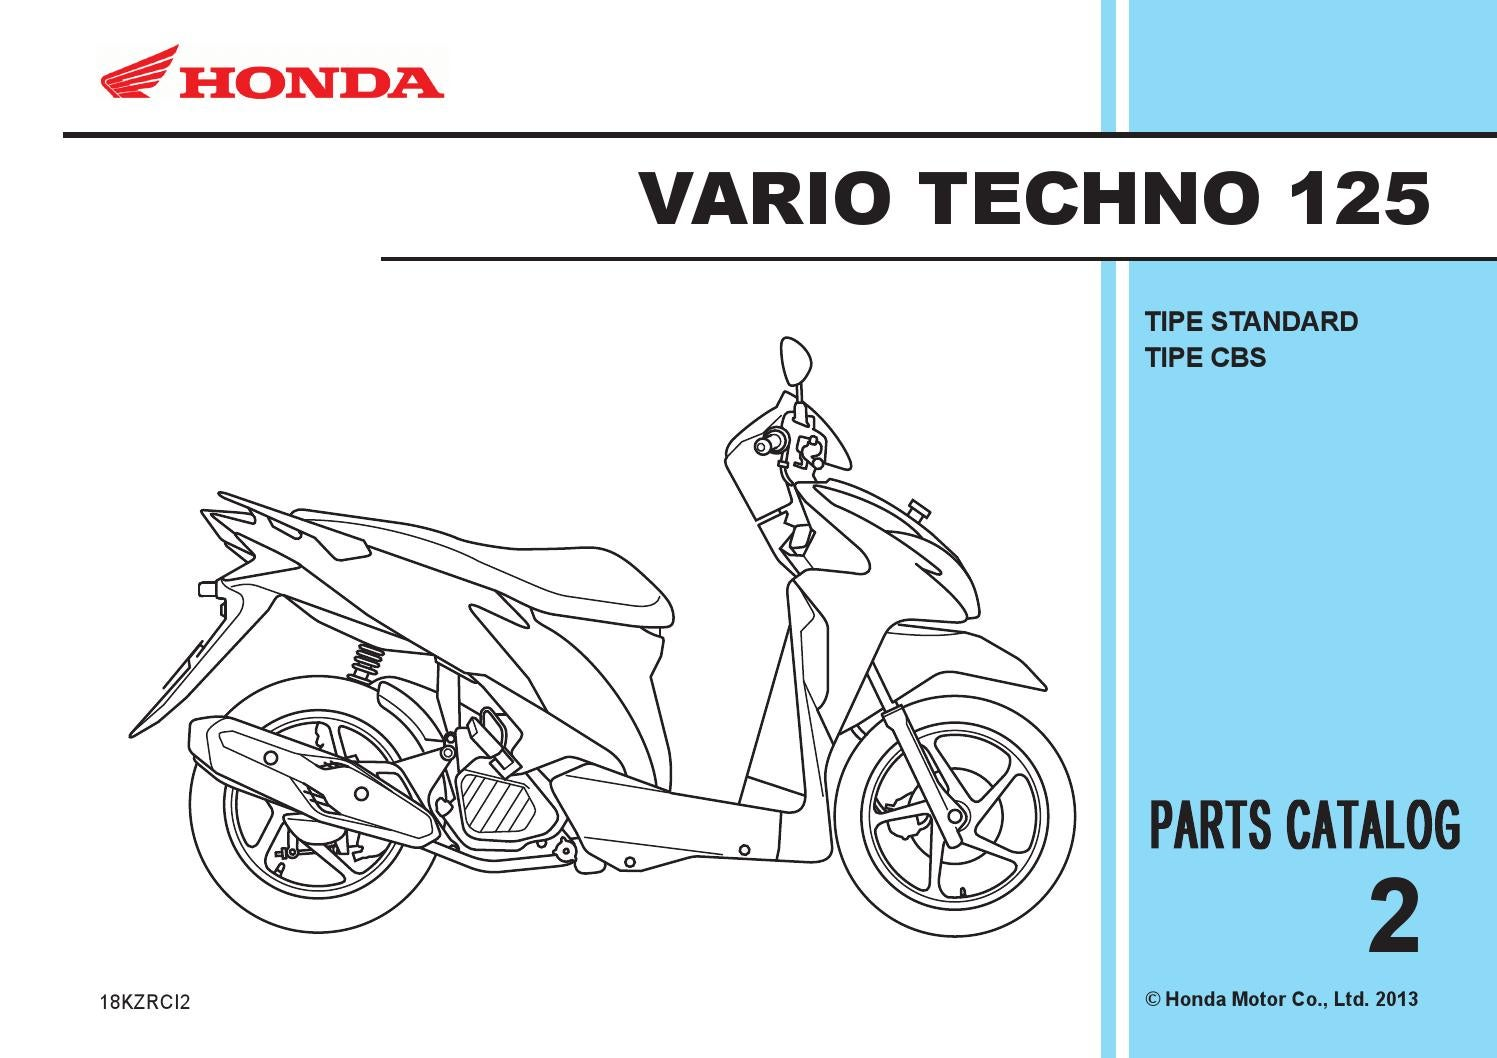 Wiring Diagram Vario 125 : Wiring diagram vario image collections